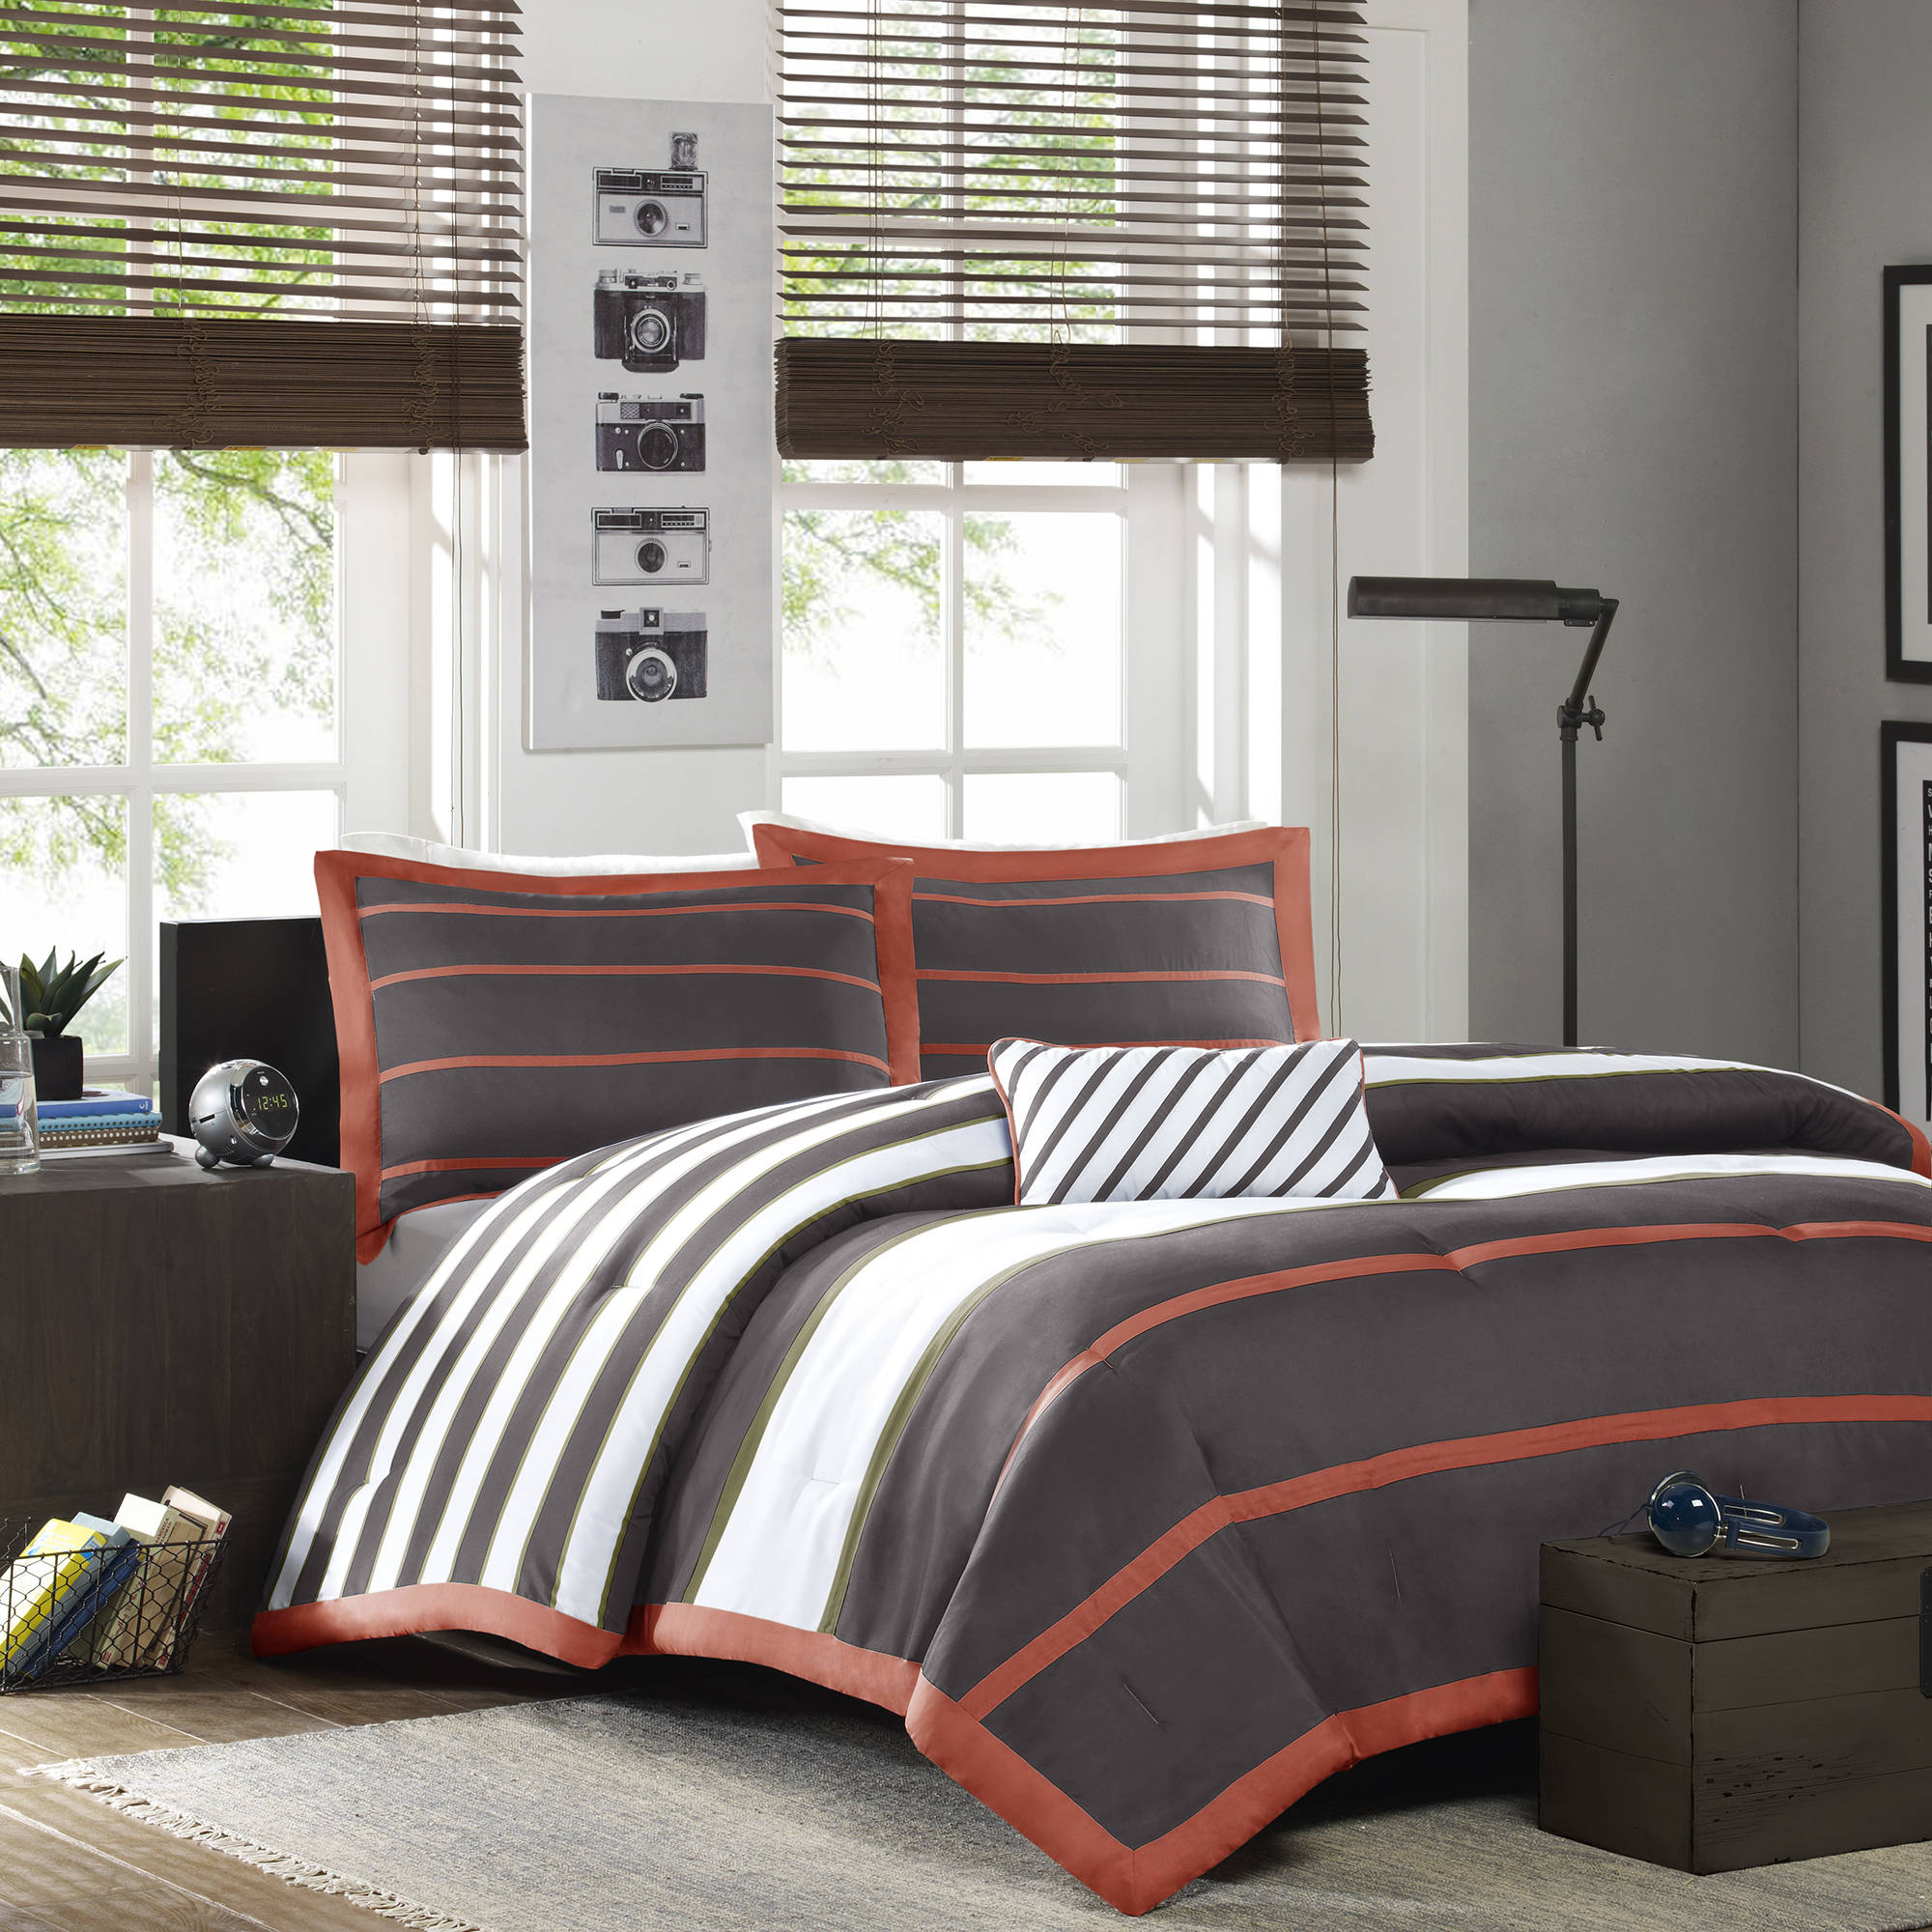 Home Essence Apartment Cody Bedding Comforter Set